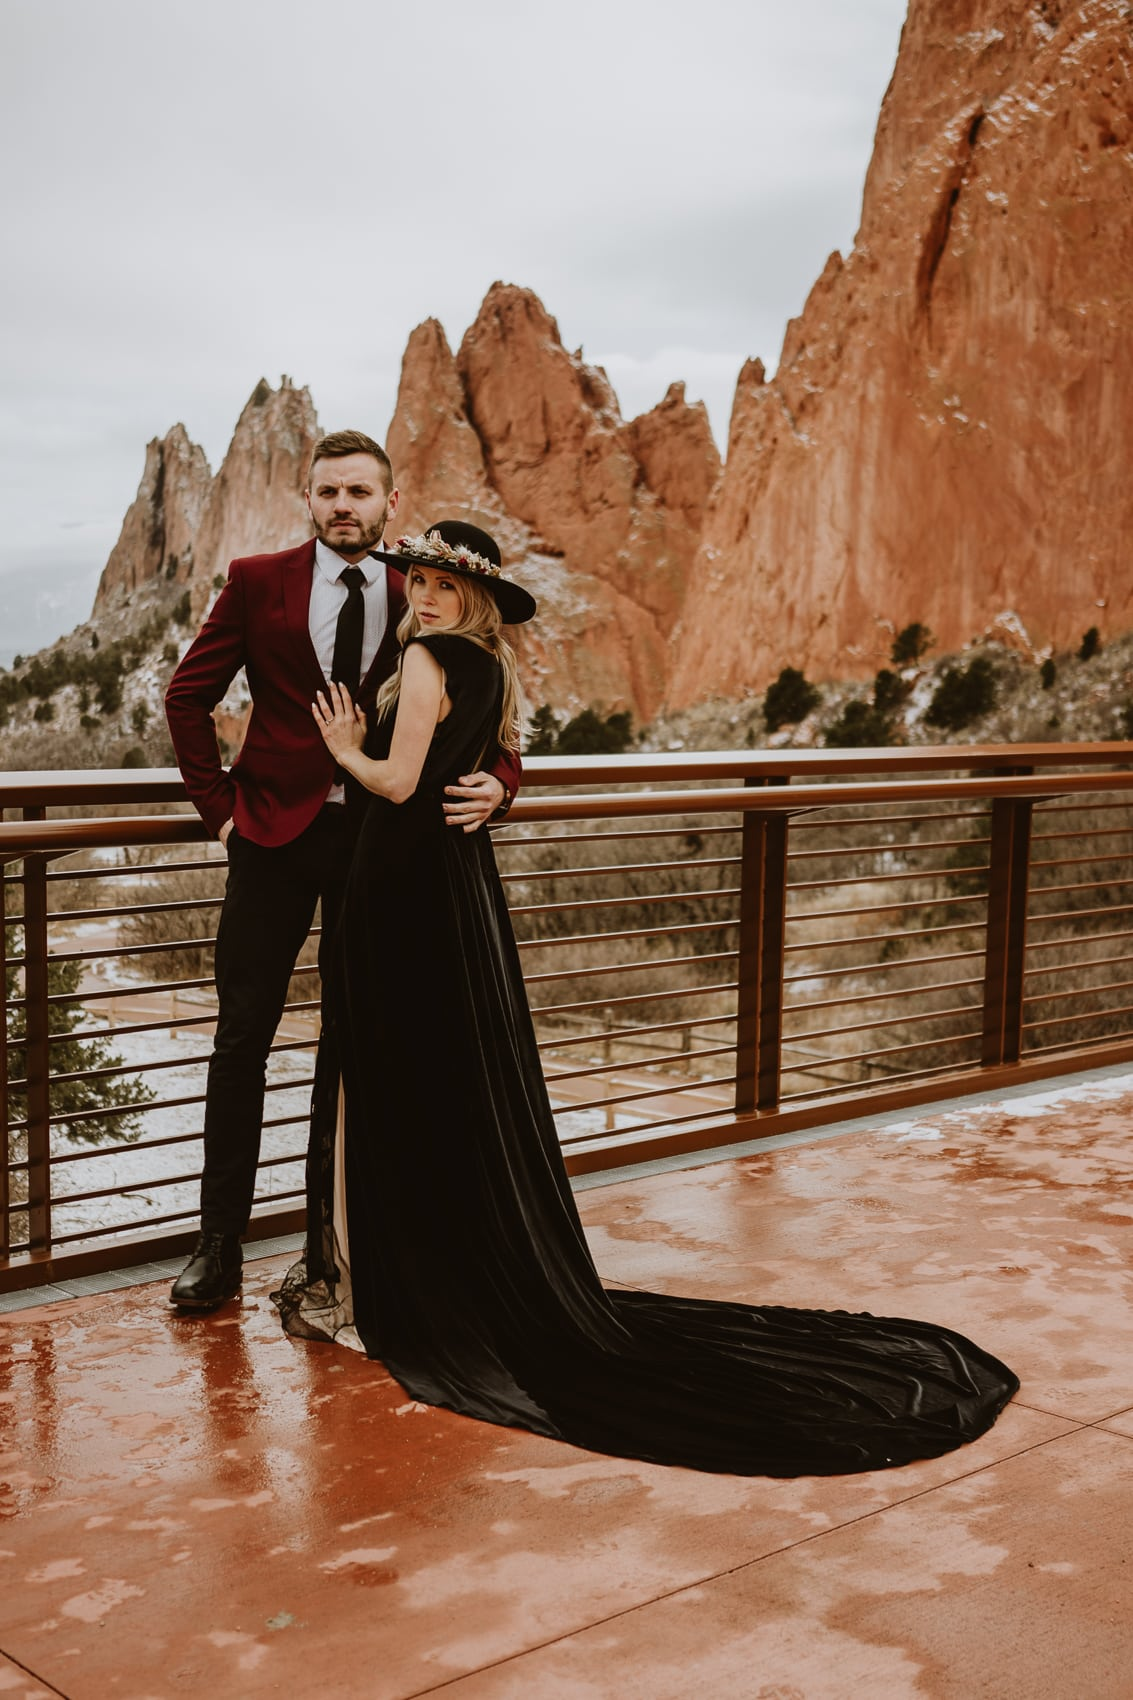 Bride and groom pose on a platform in front of the jagged rock formations for Garden of the Gods wedding photos